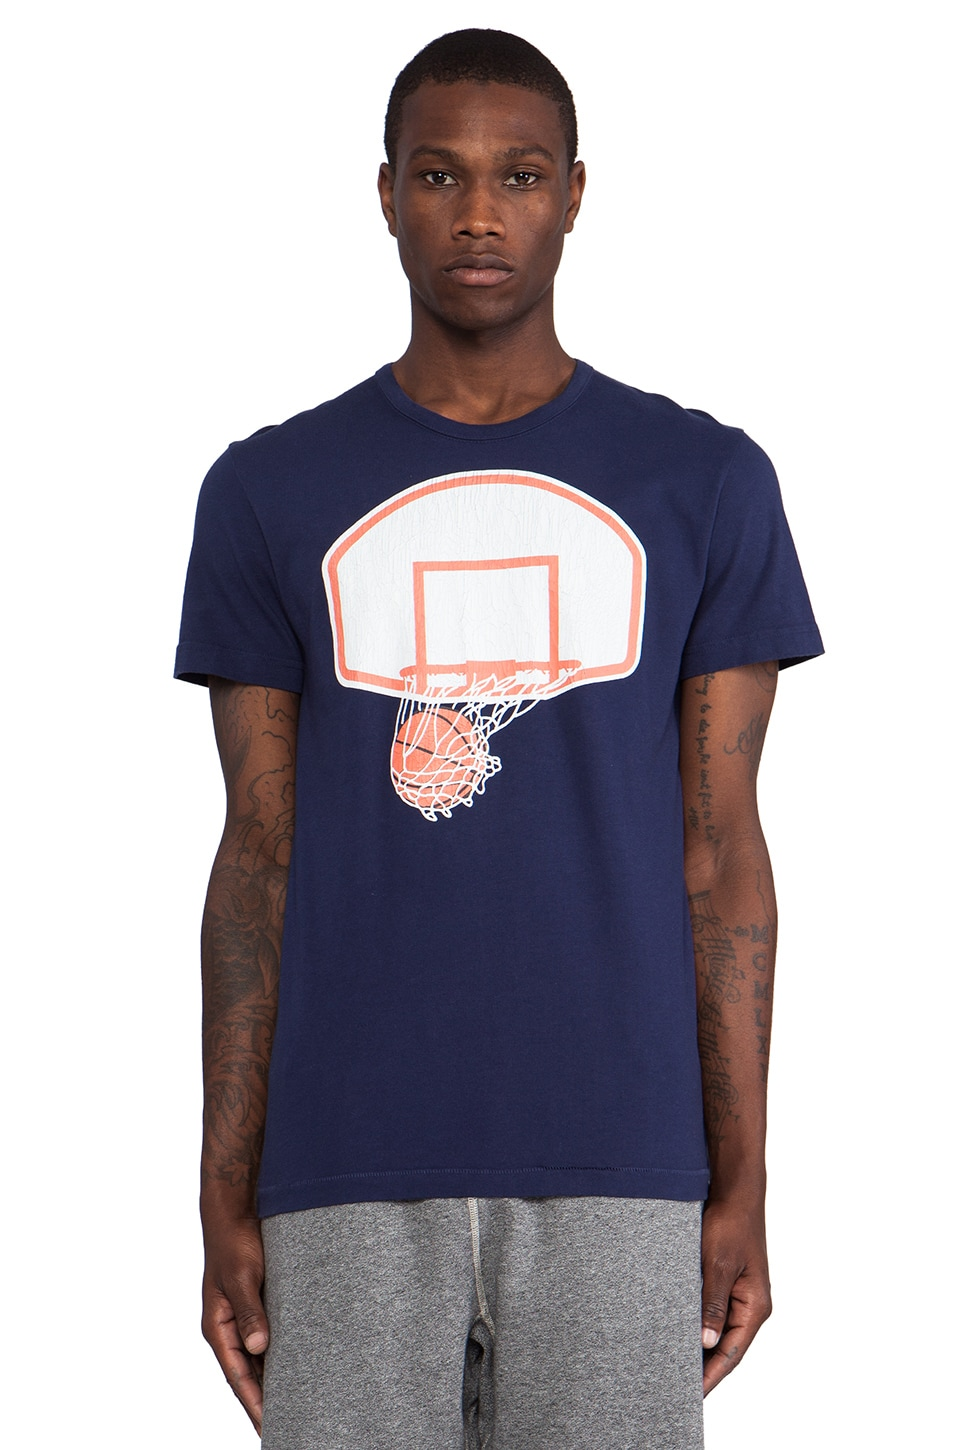 S&H Athletics Johnson T-Shirt in Hoop Navy